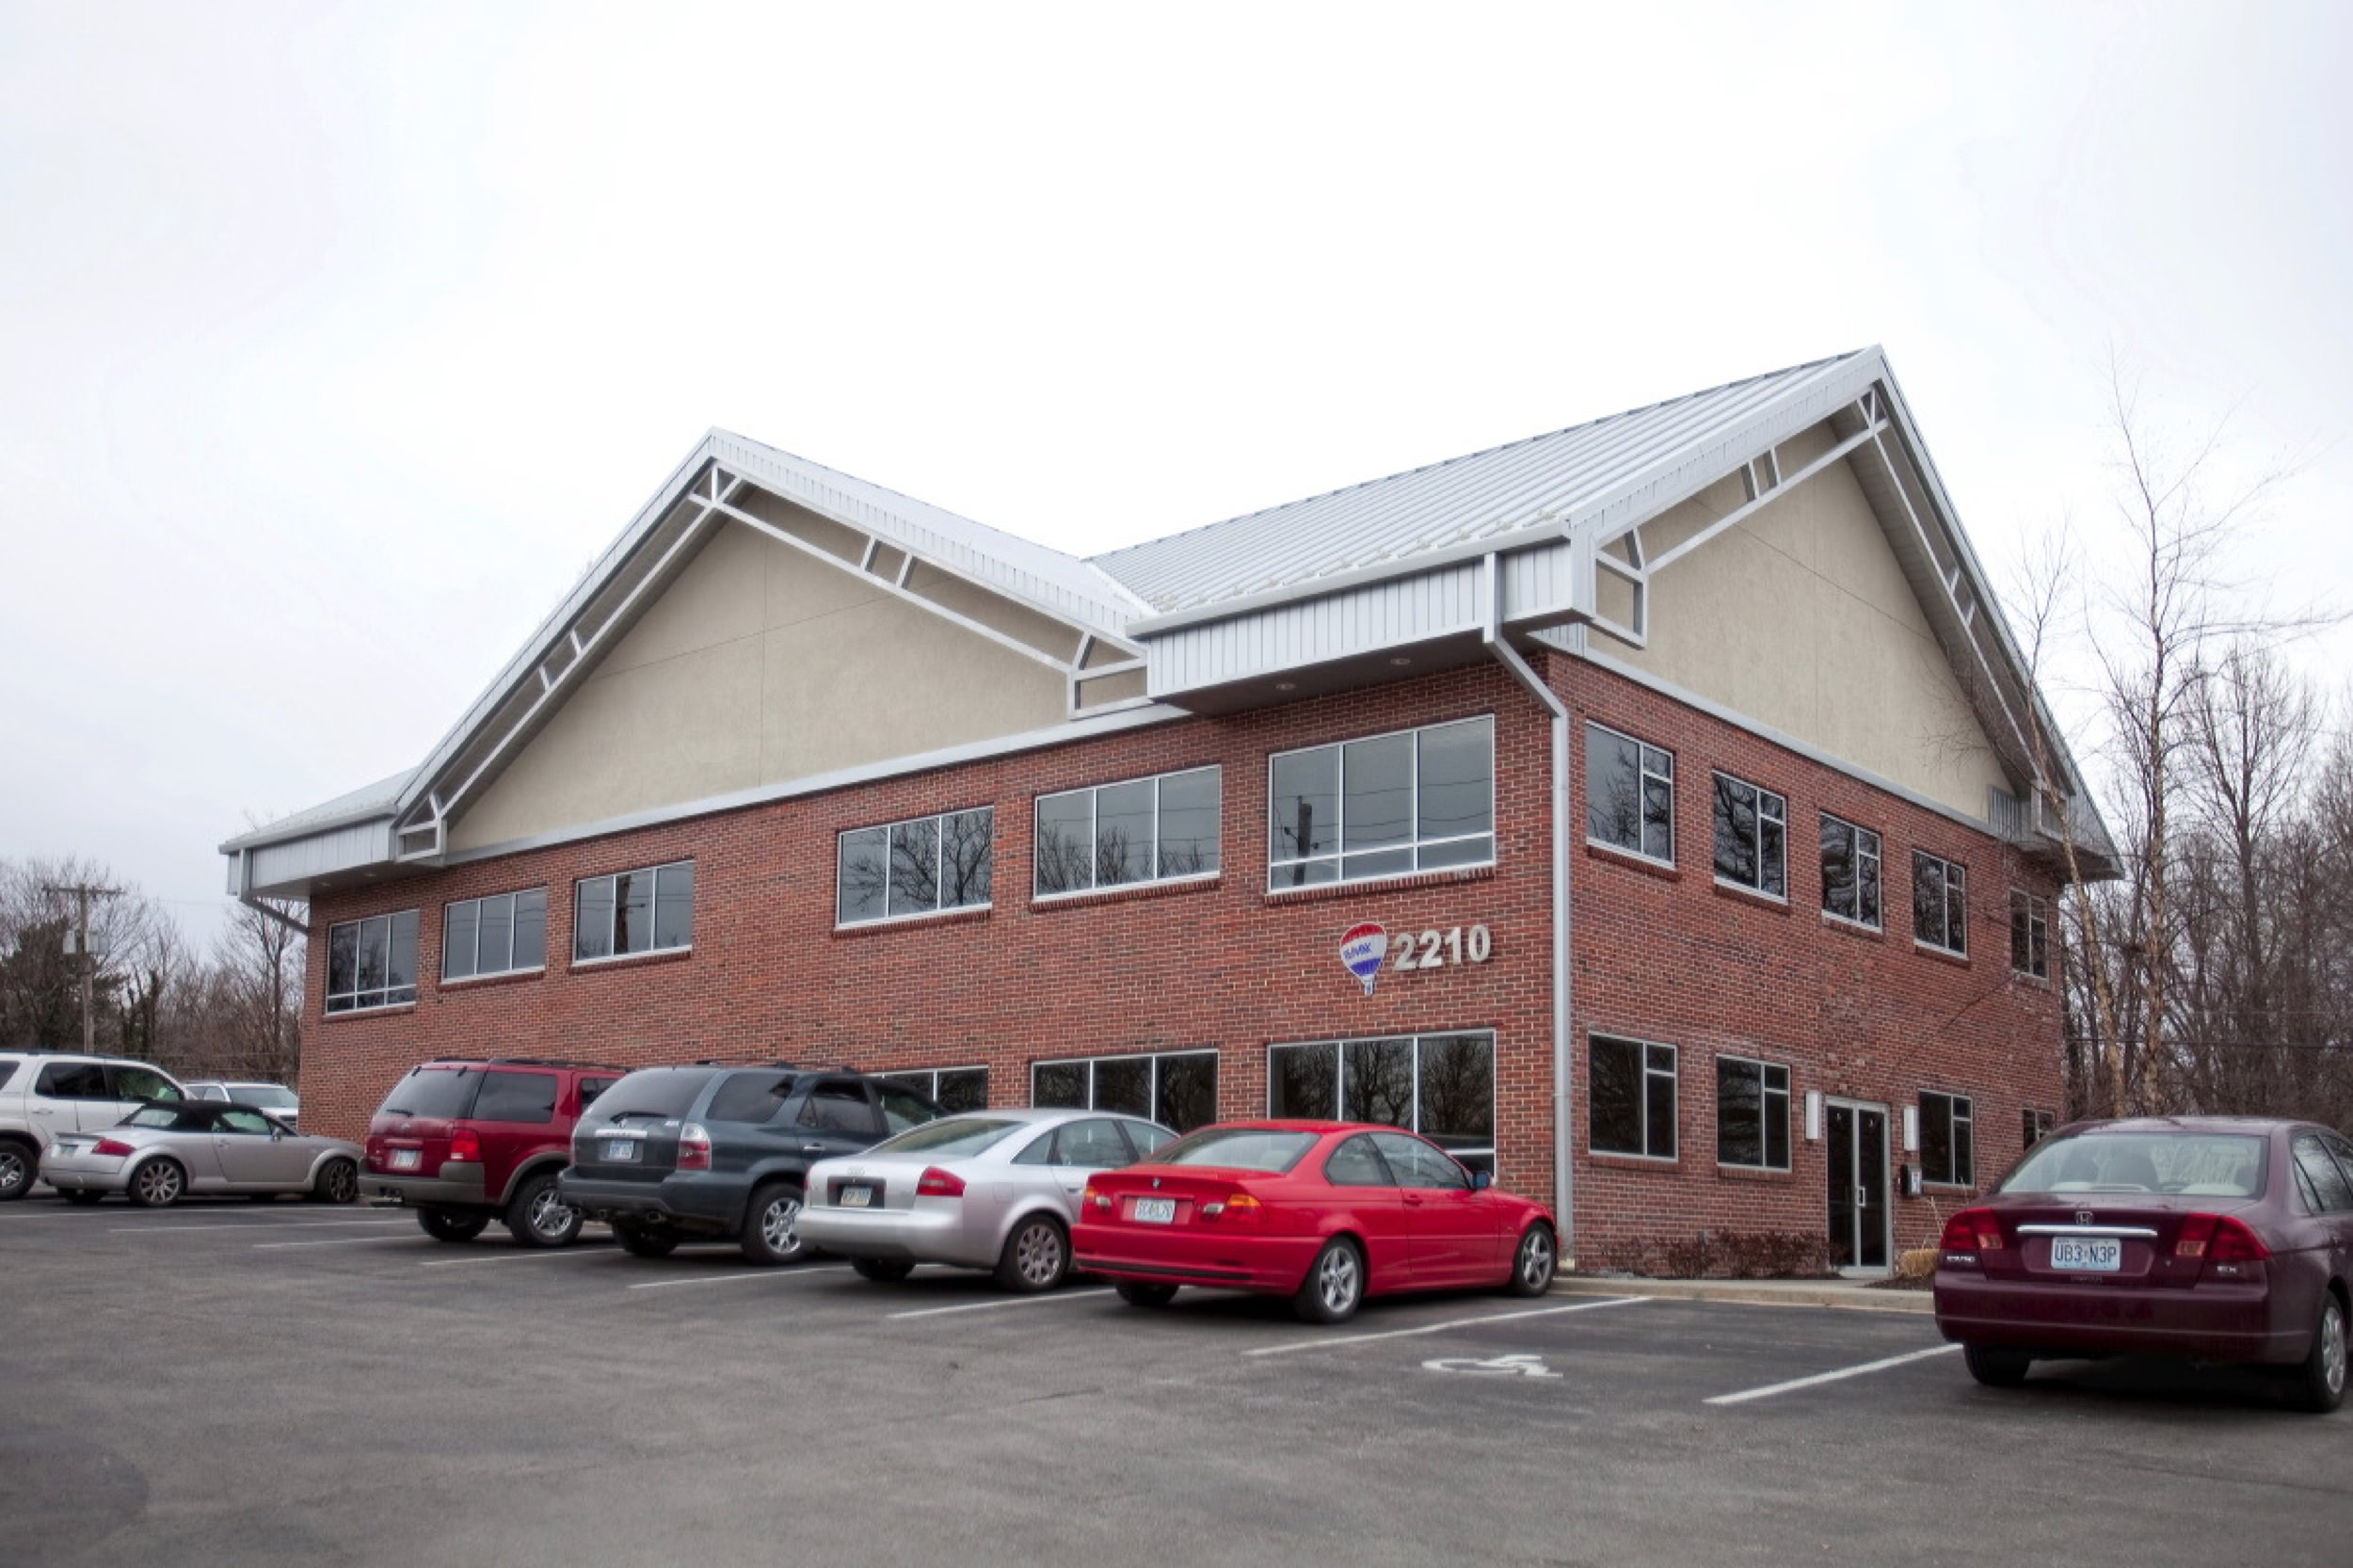 Exterior view of Re/Max office